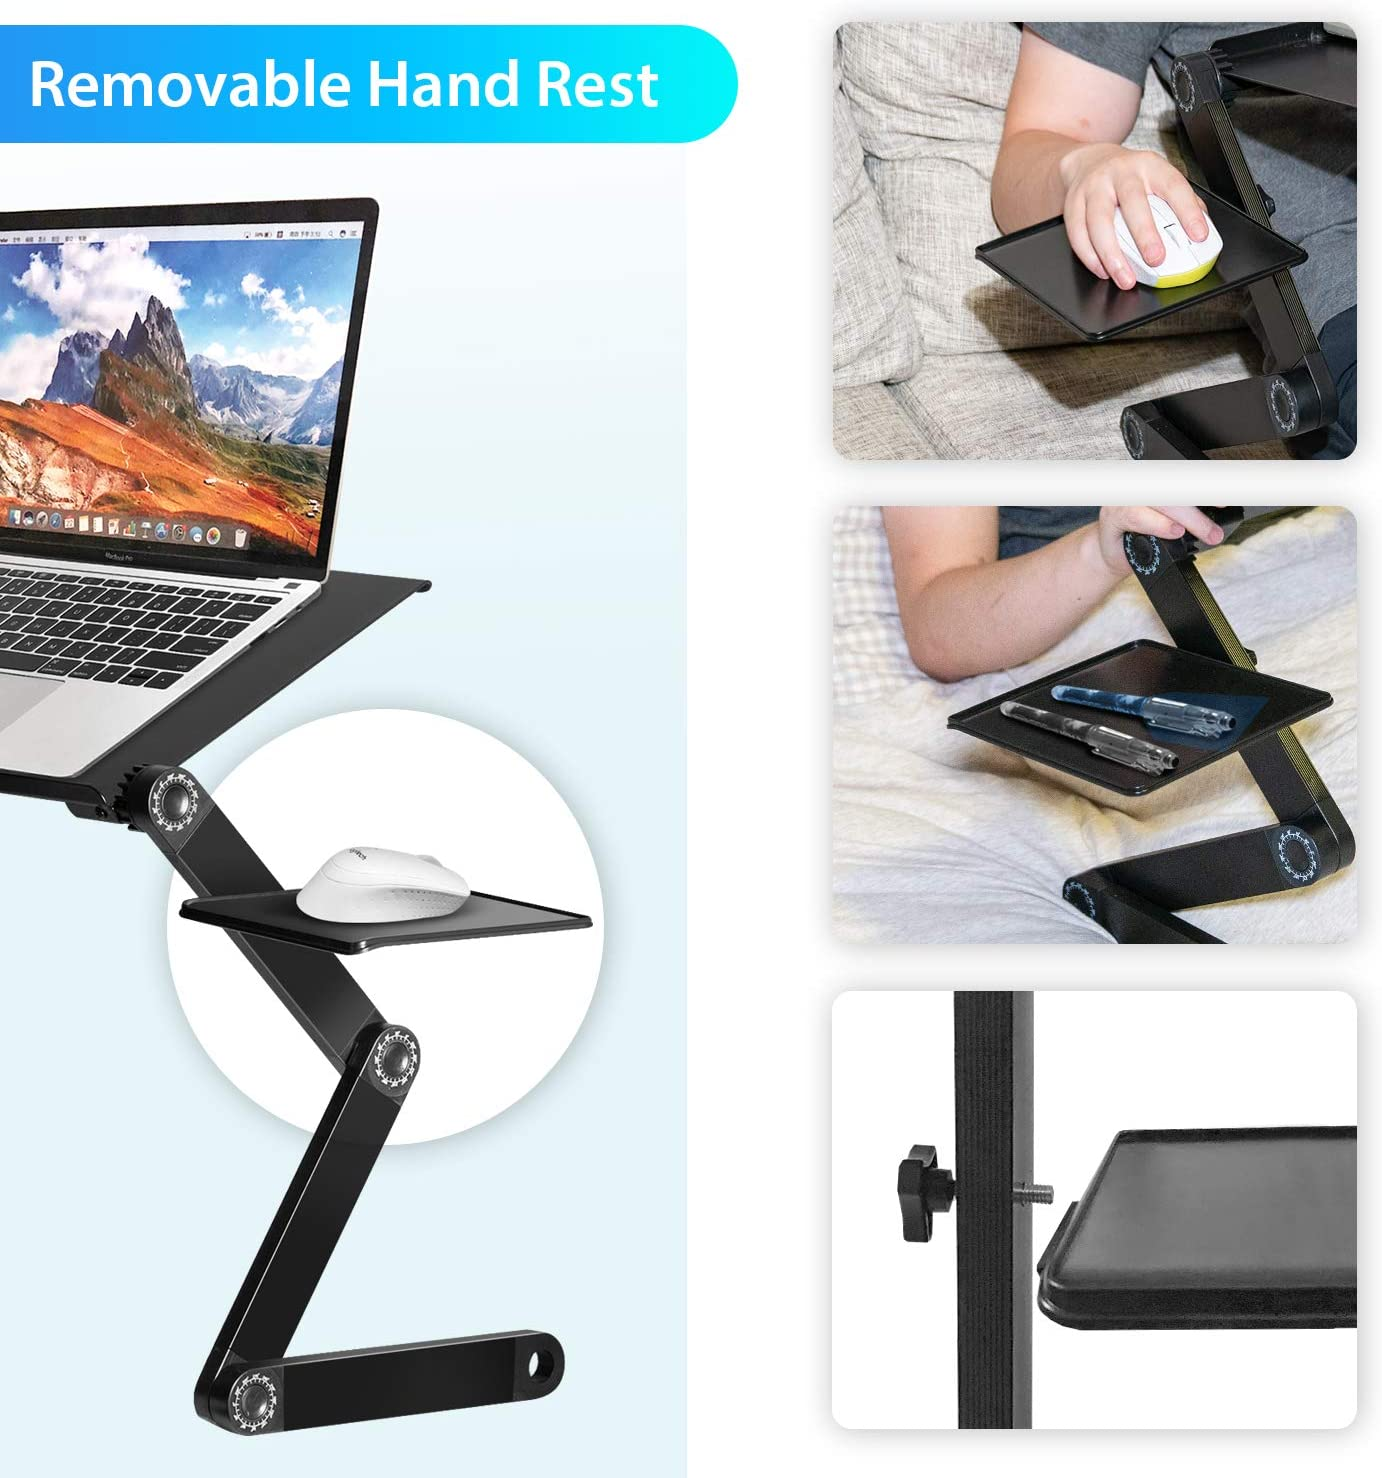 YOSHIKO Foldable Lap Desk Laptop Stand for Bed Foldable Standing Desk Height Adjustable Cozy Laptop Stand for Desk Portable Bed Desk Bed Tray for Couch and Sofa